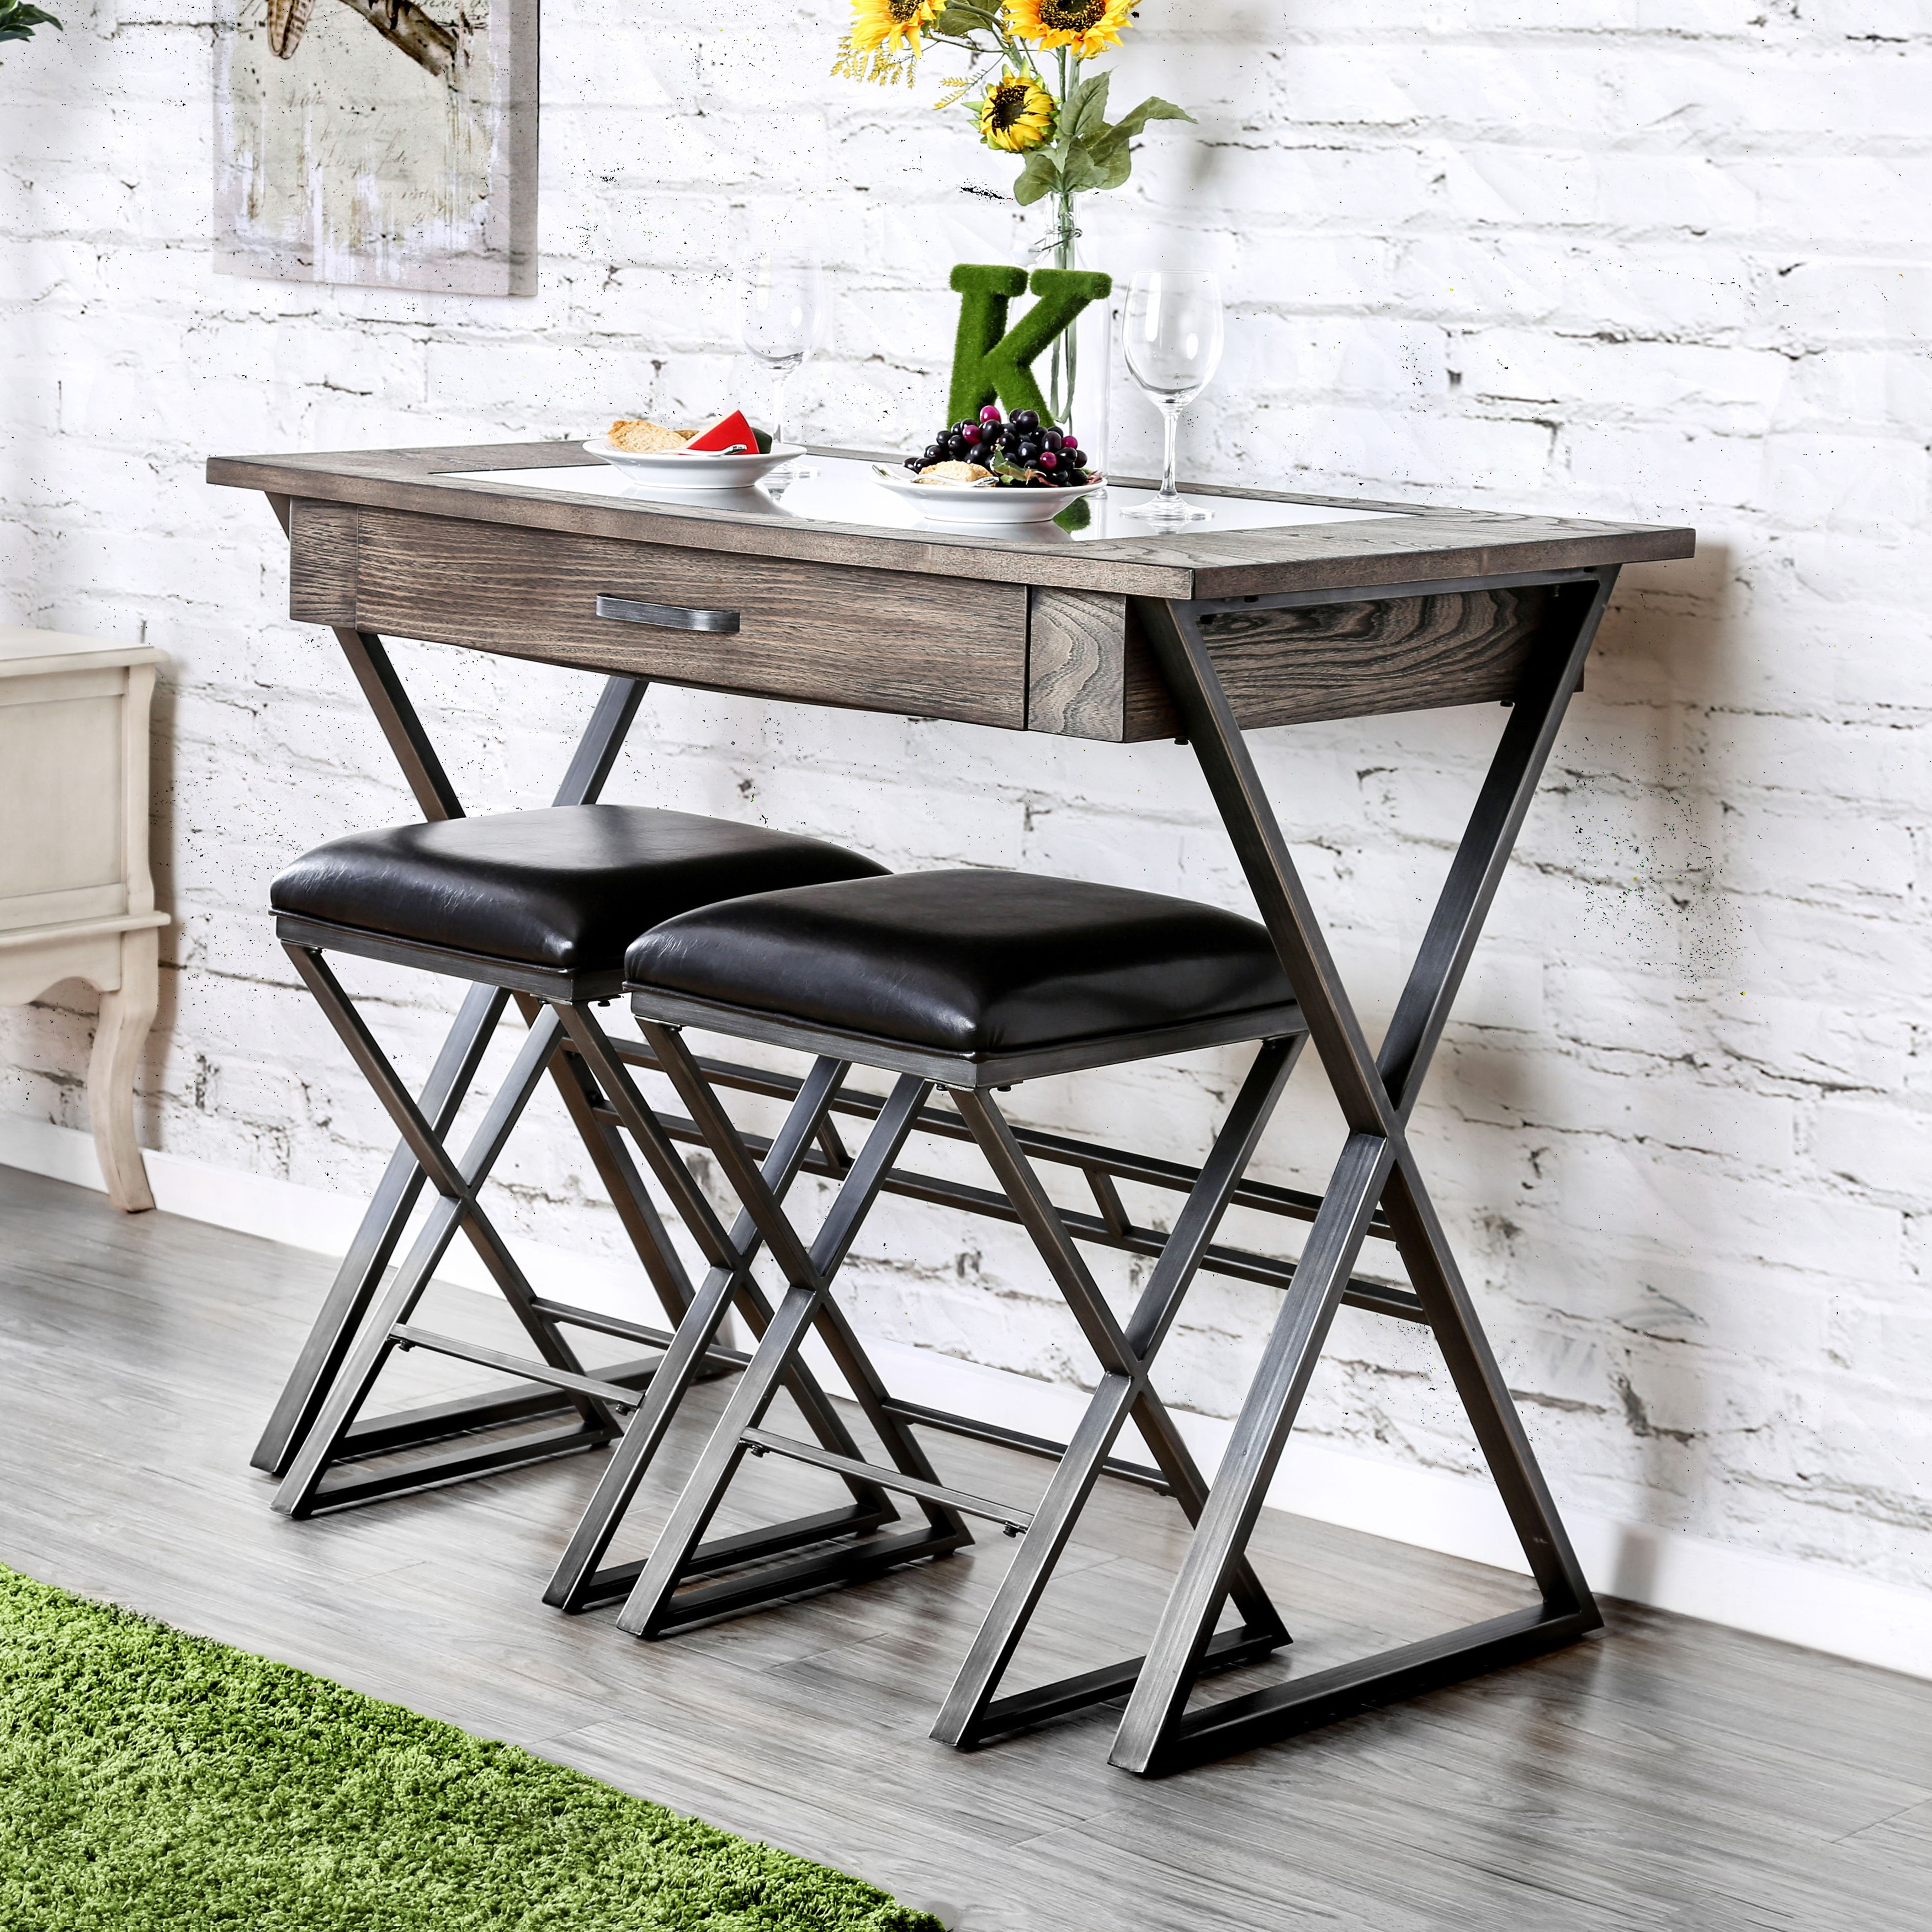 Shop Furniture of America Garrin Industrial Rustic Wine Storage Bar Table - On Sale - Free Shipping Today - Overstock.com - 13218315  sc 1 st  Overstock.com & Shop Furniture of America Garrin Industrial Rustic Wine Storage Bar ...